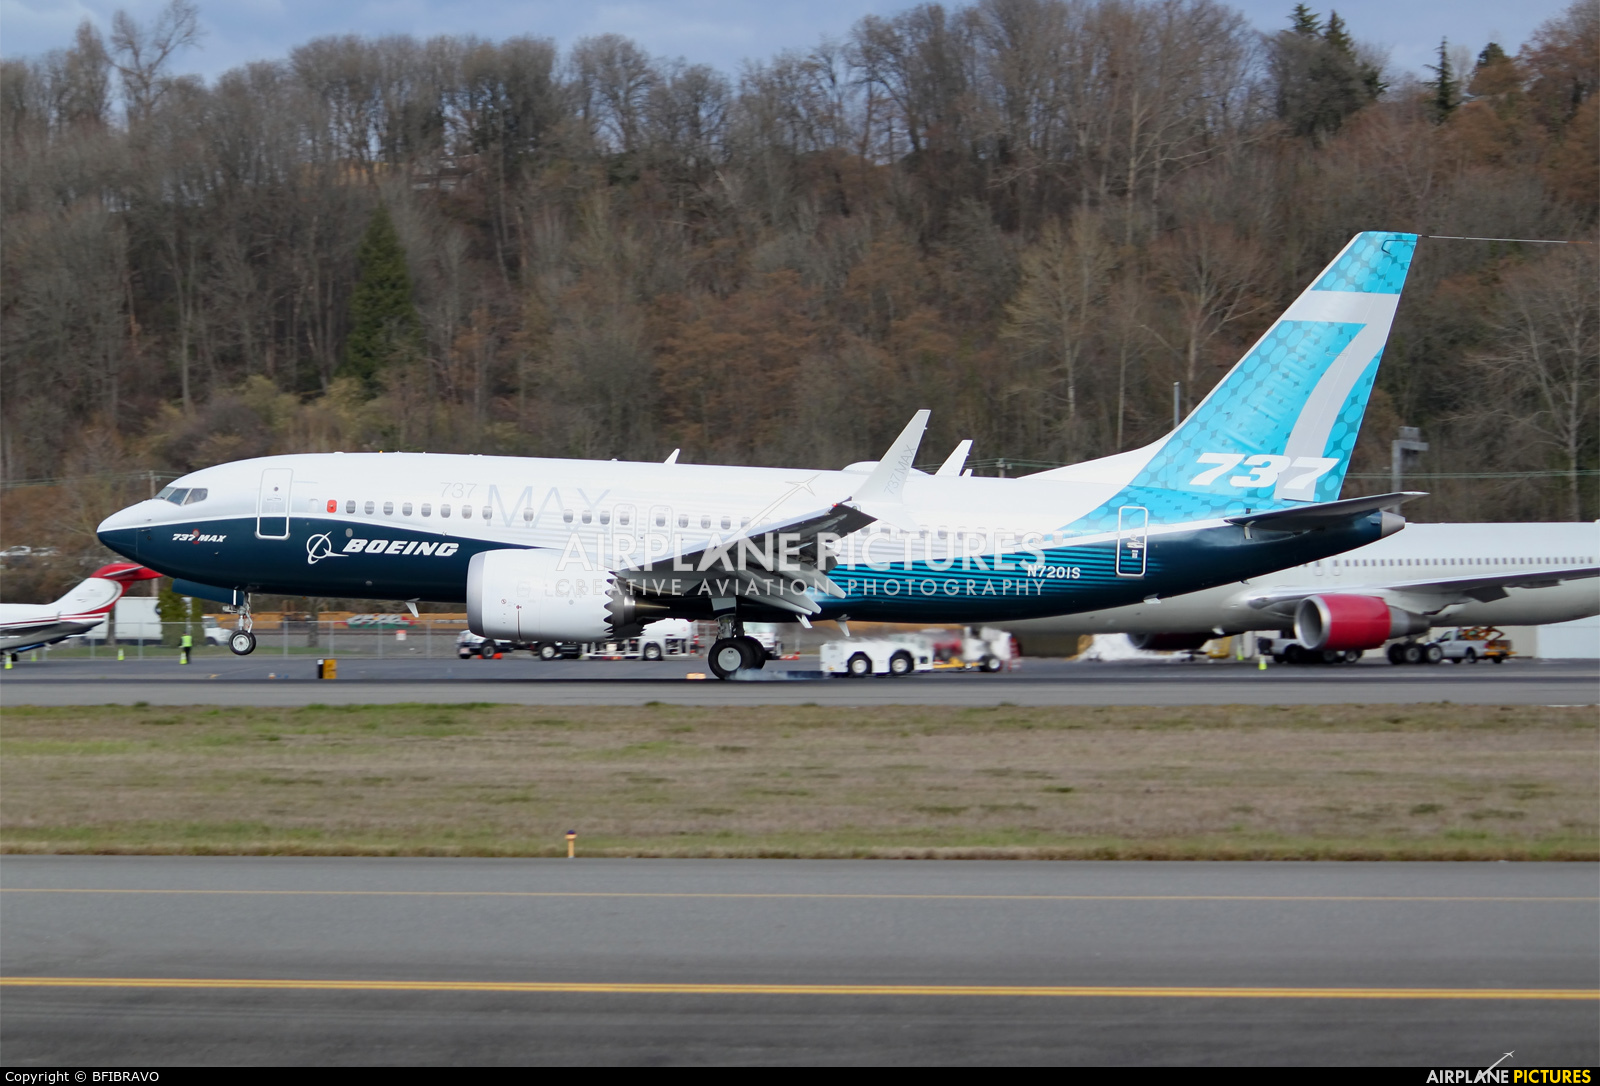 Boeing Company N7201S aircraft at Seattle - Boeing Field / King County Intl